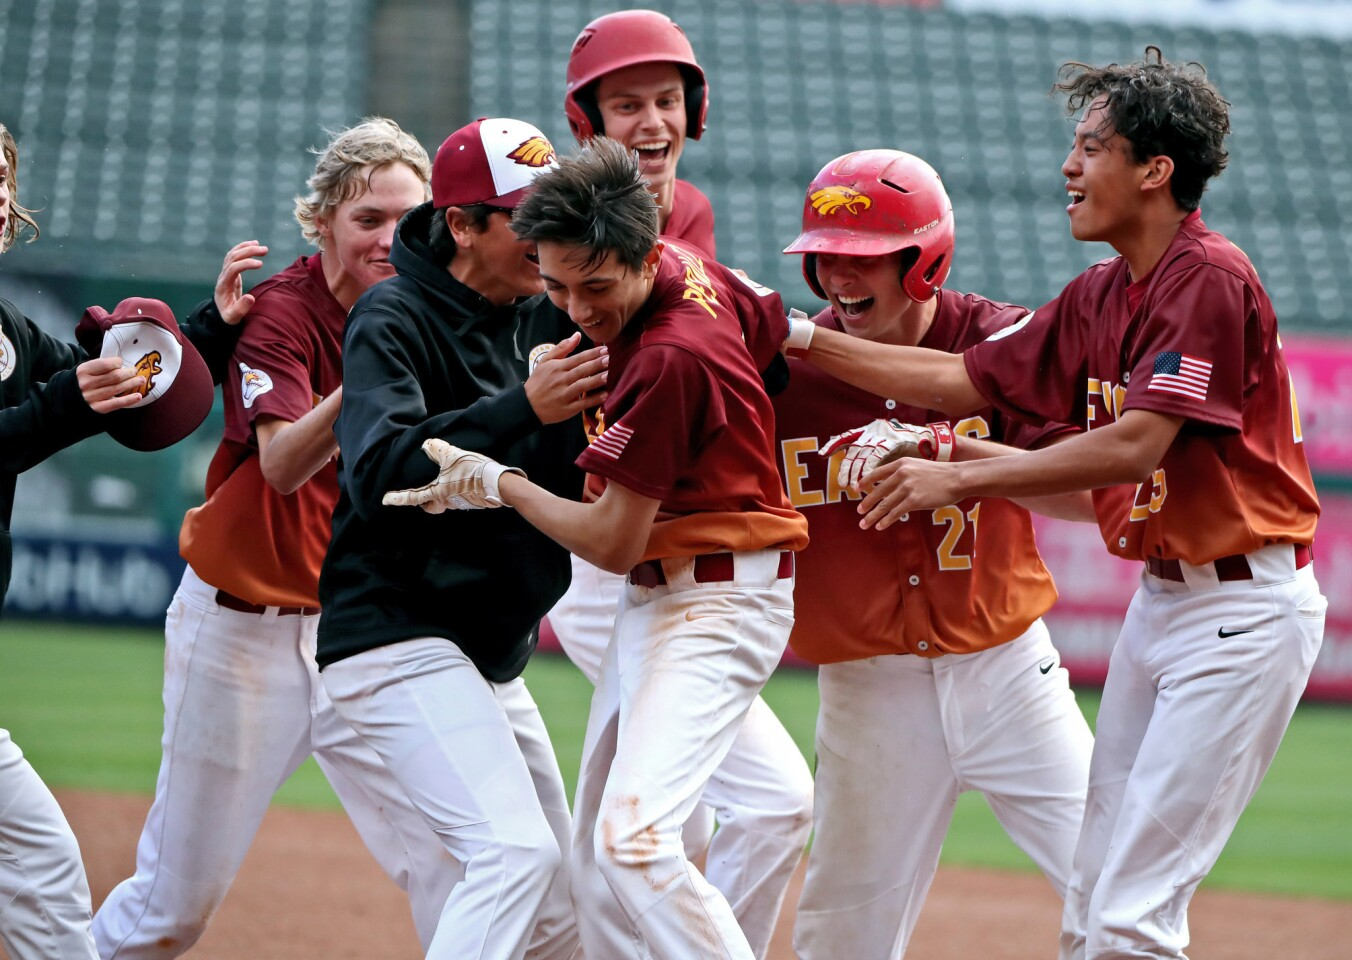 Photo Gallery: Costa Mesa vs. Estancia in baseball